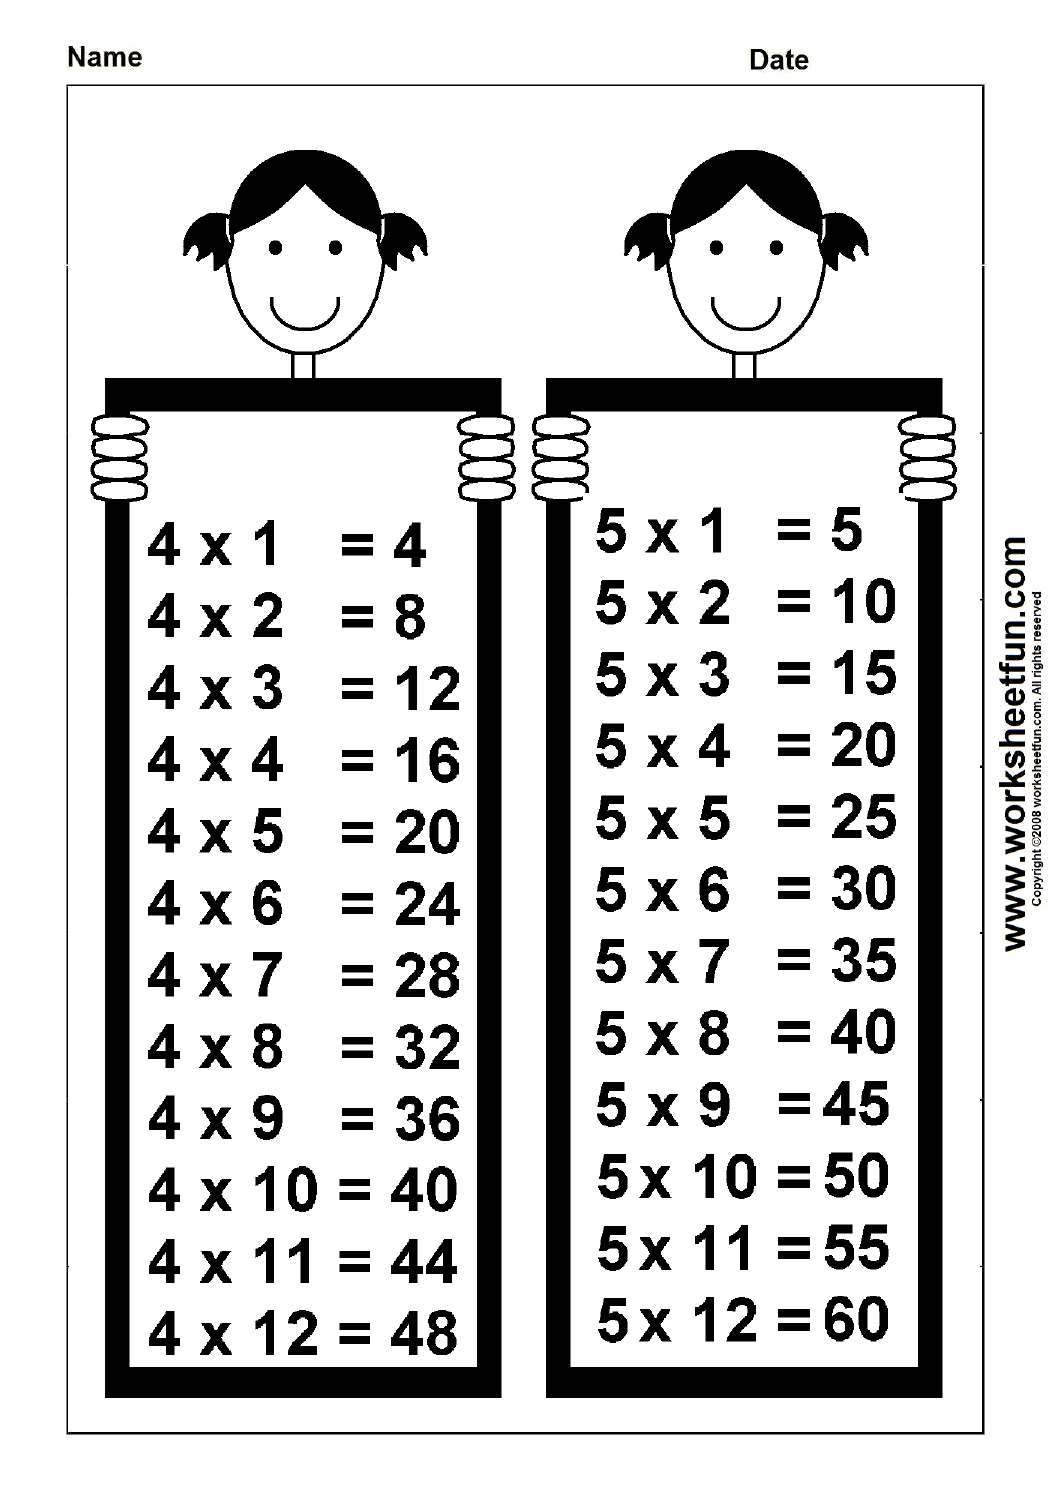 Times Table Chart 4 5 Worksheets Lots Of Great Teaching Materials In All Subjects Times Table Chart Times Tables Free Printable Worksheets